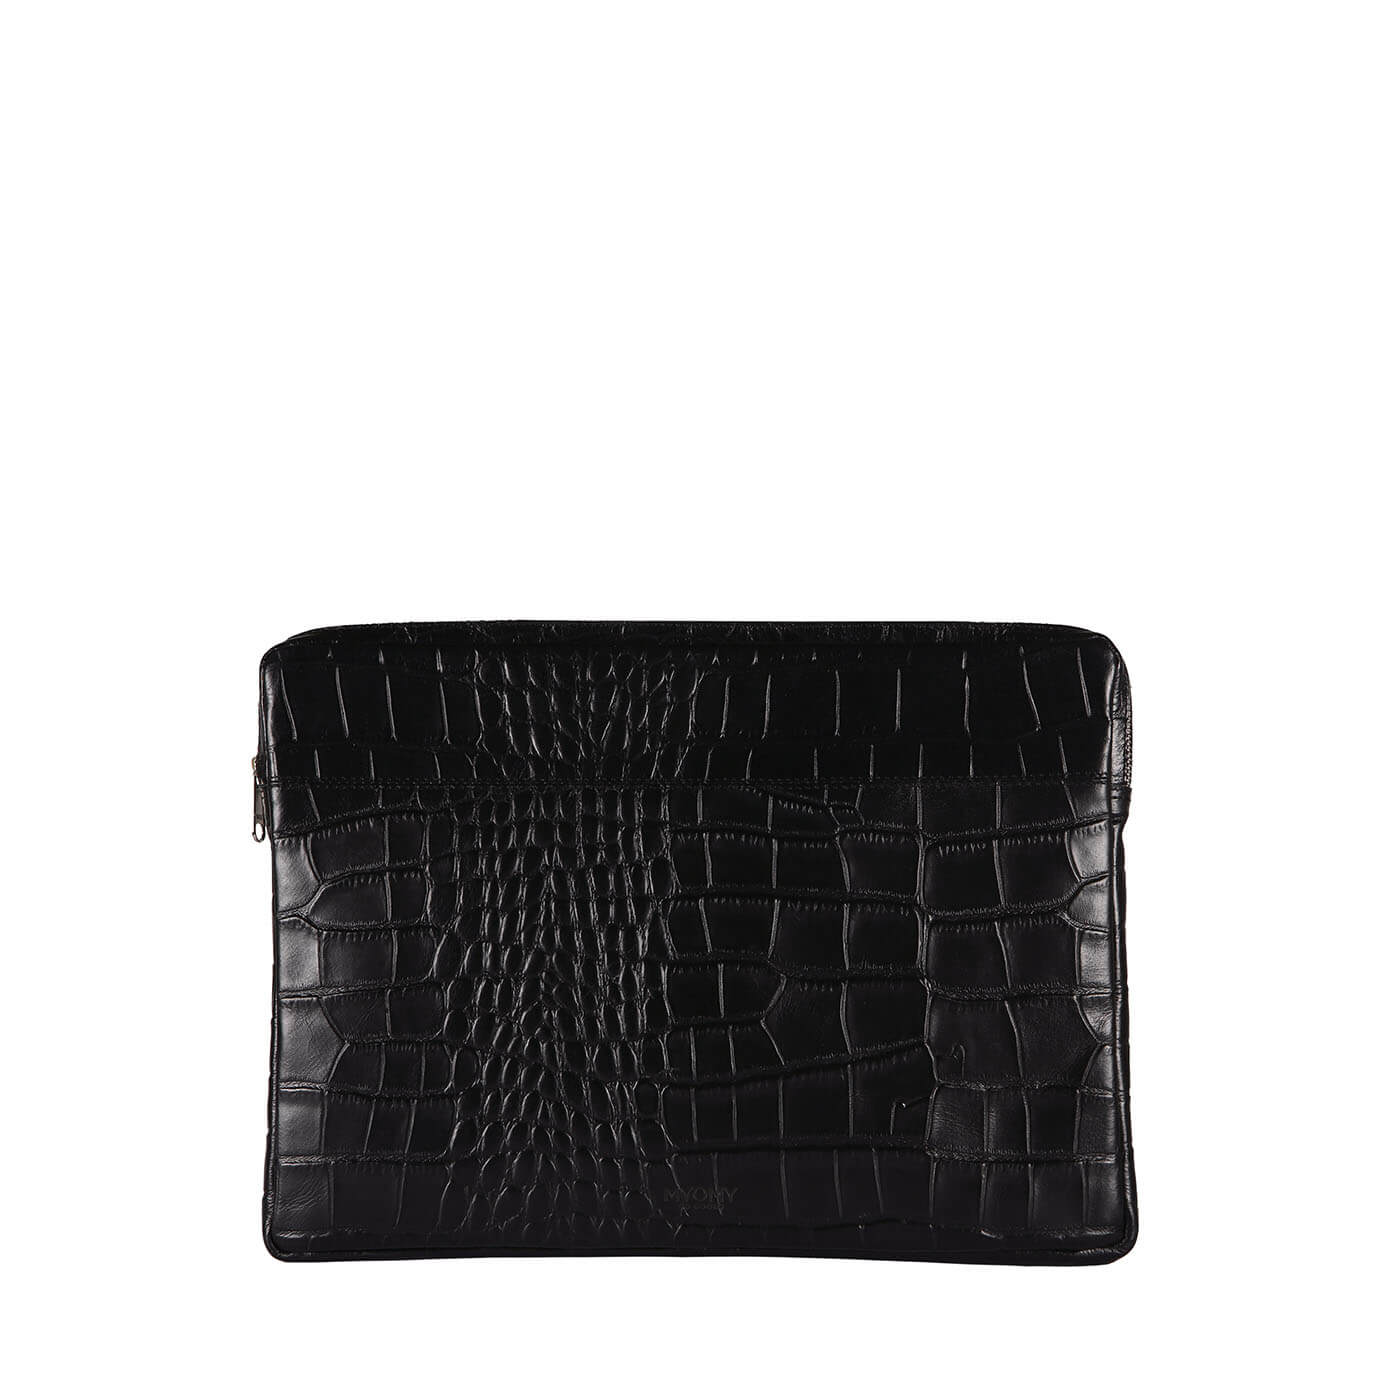 MY PHILIP BAG Laptop Sleeve 15 inch - croco black